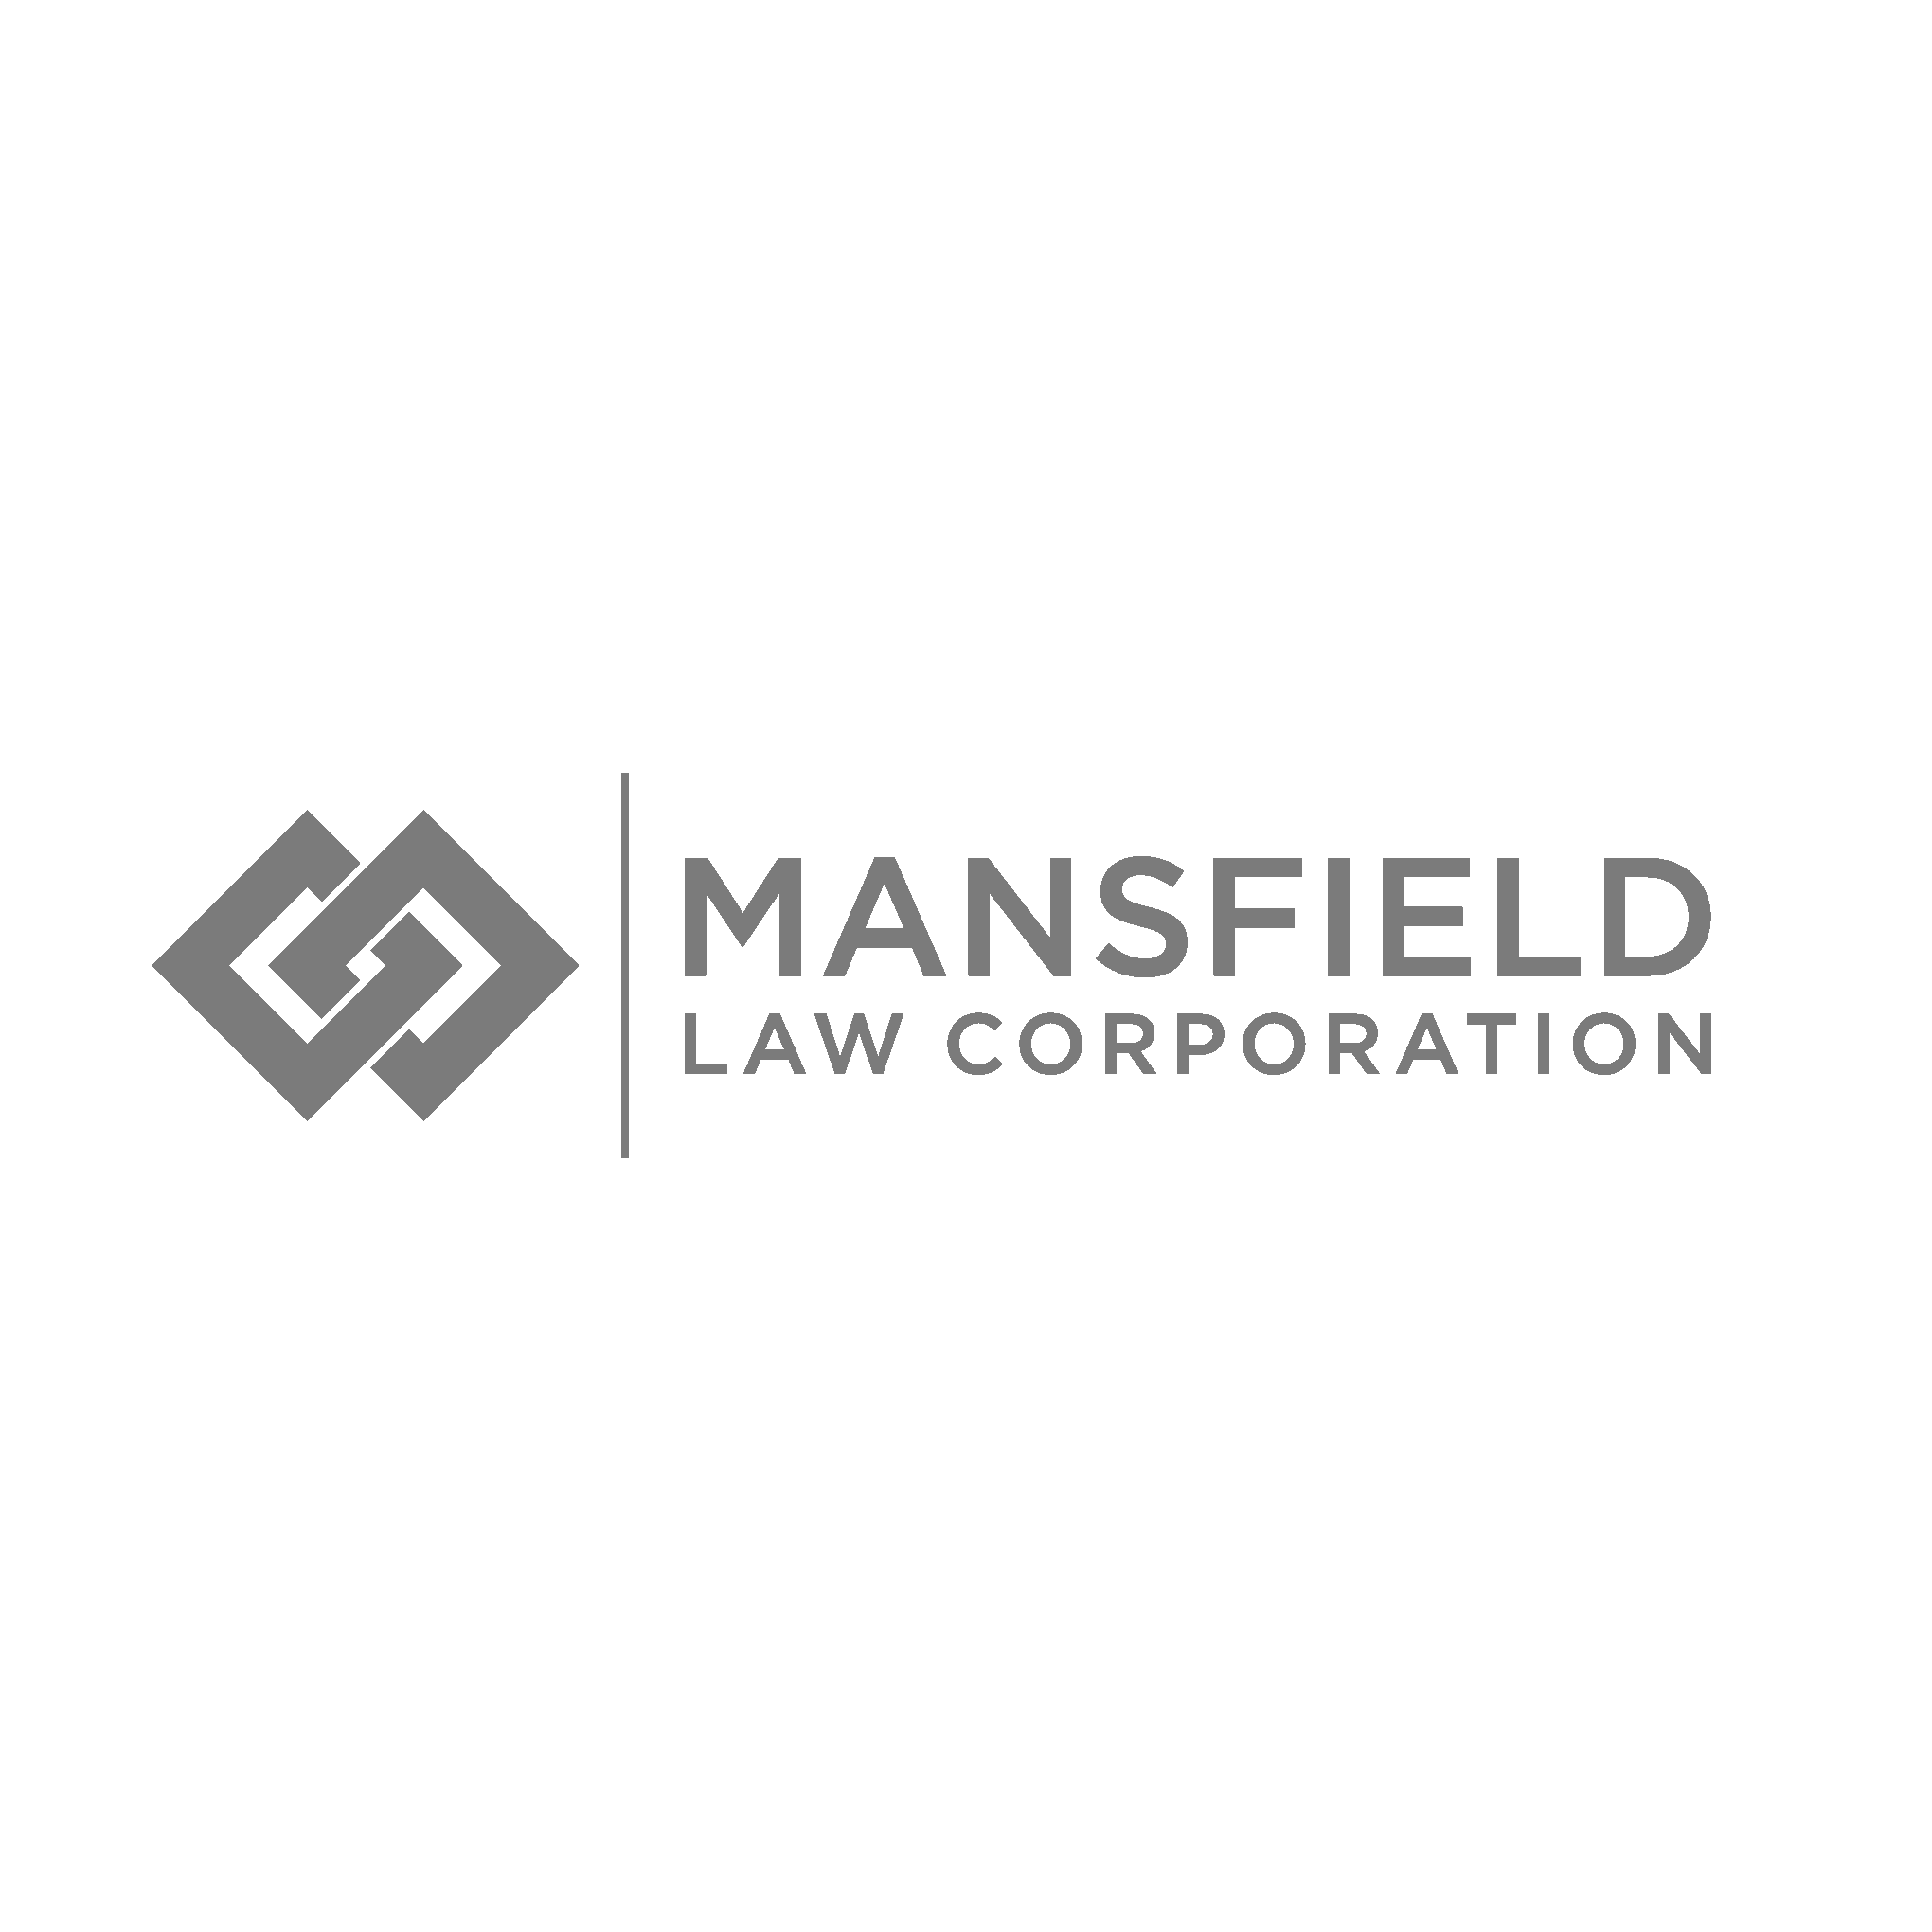 Mansfield Law Corporation image 12